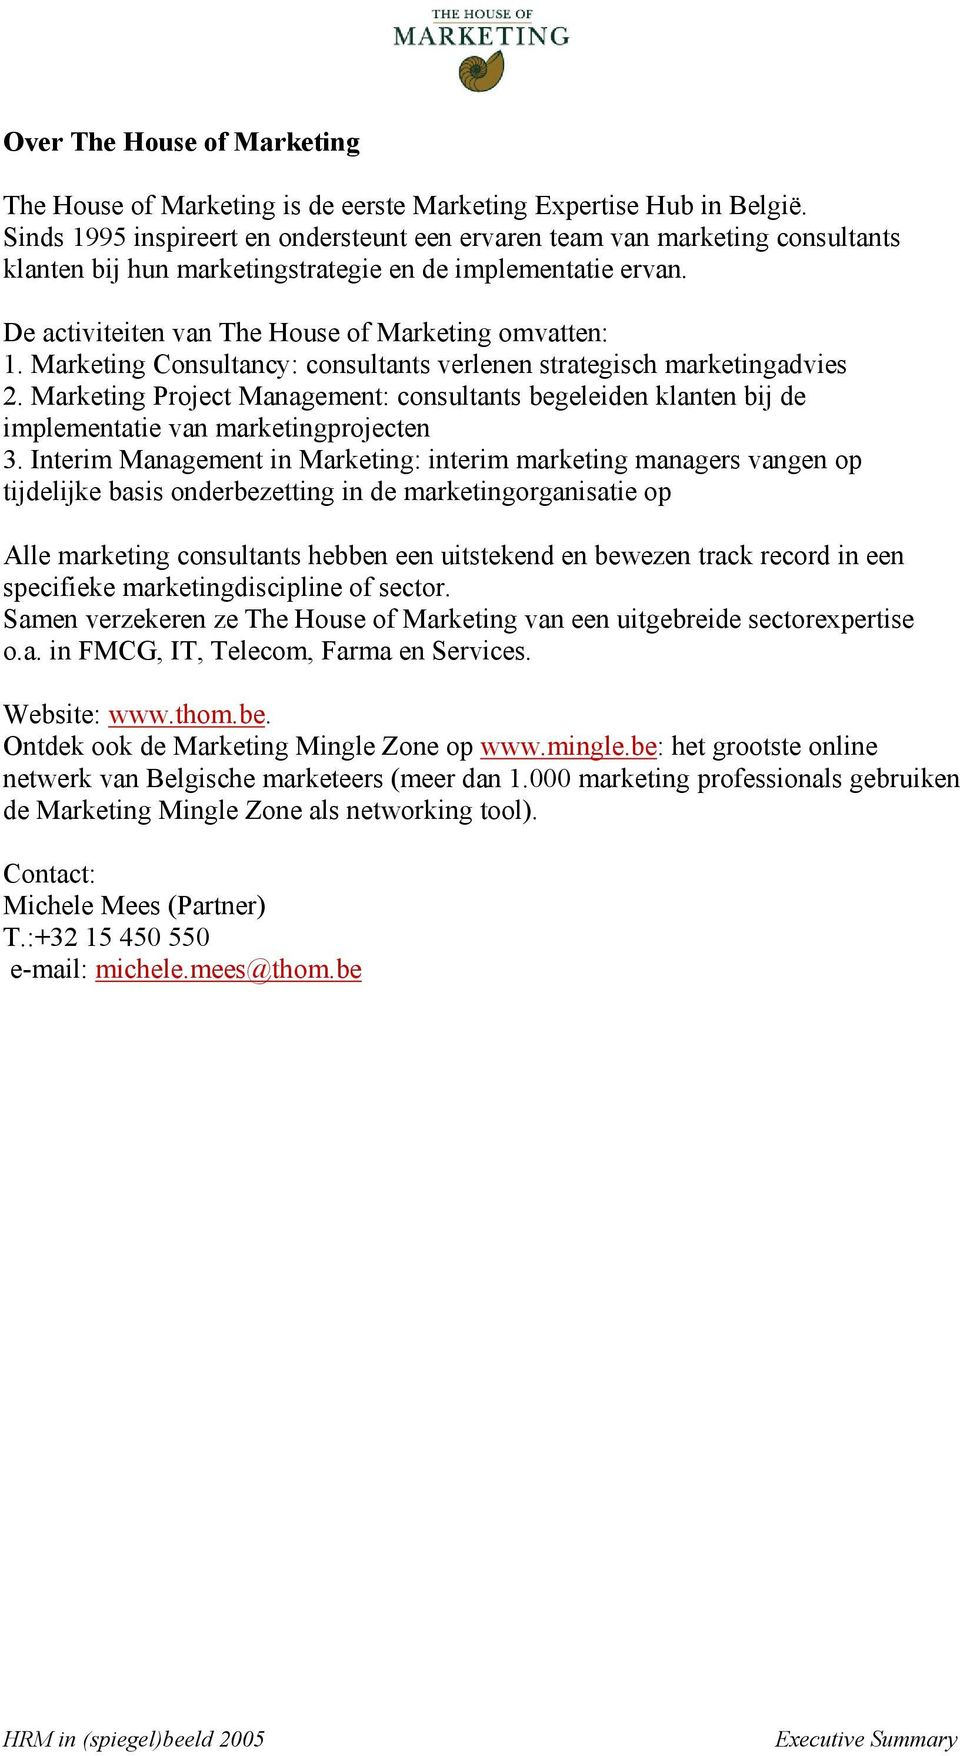 Marketing Consultancy: consultants verlenen strategisch marketingadvies 2. Marketing Project Management: consultants begeleiden klanten bij de implementatie van marketingprojecten 3.